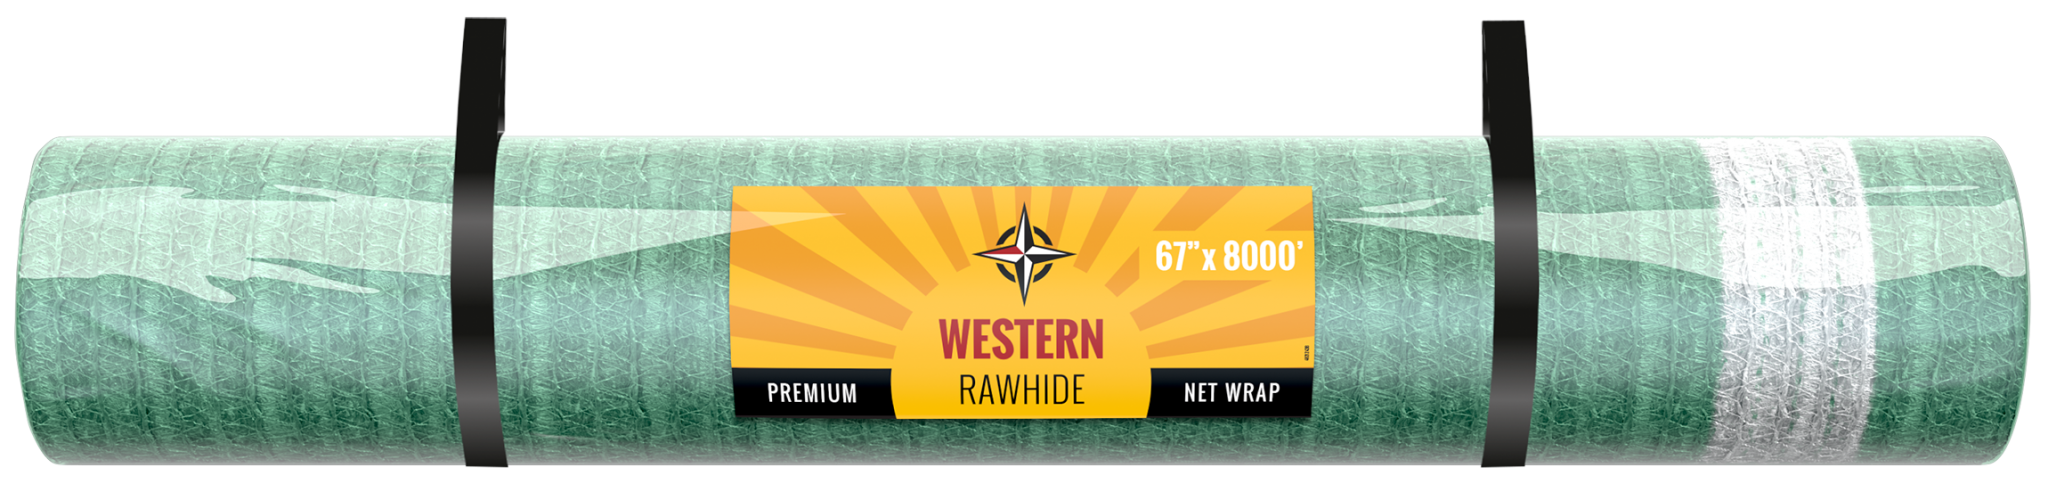 Committed AG   Western Rawhide roll